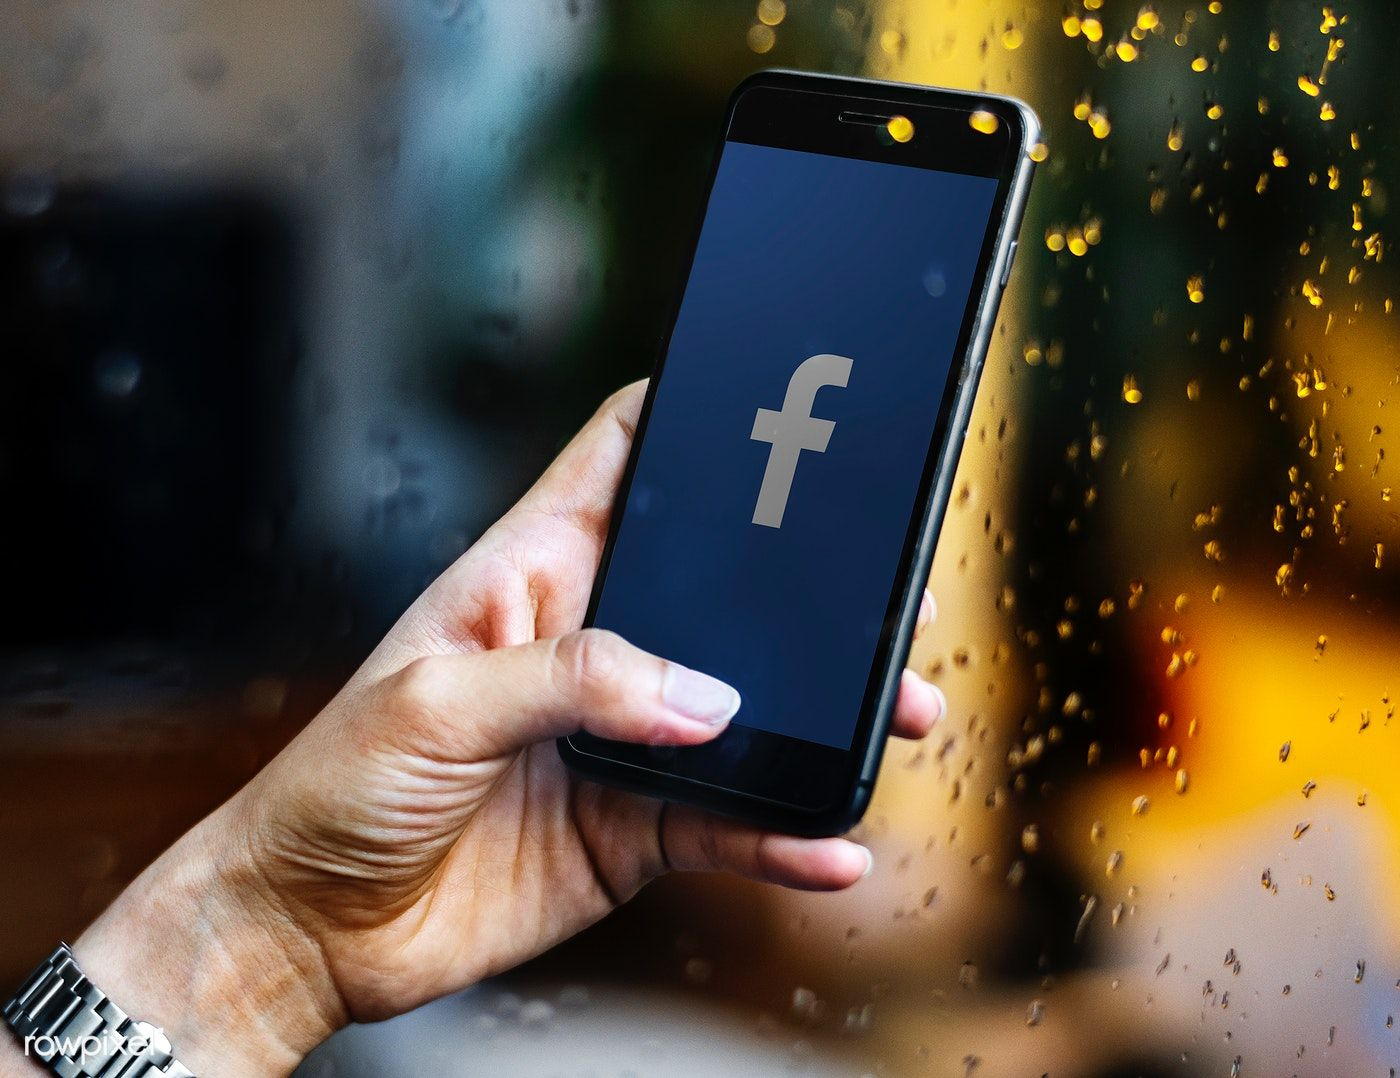 Person using Facebook application on a phone | free image by